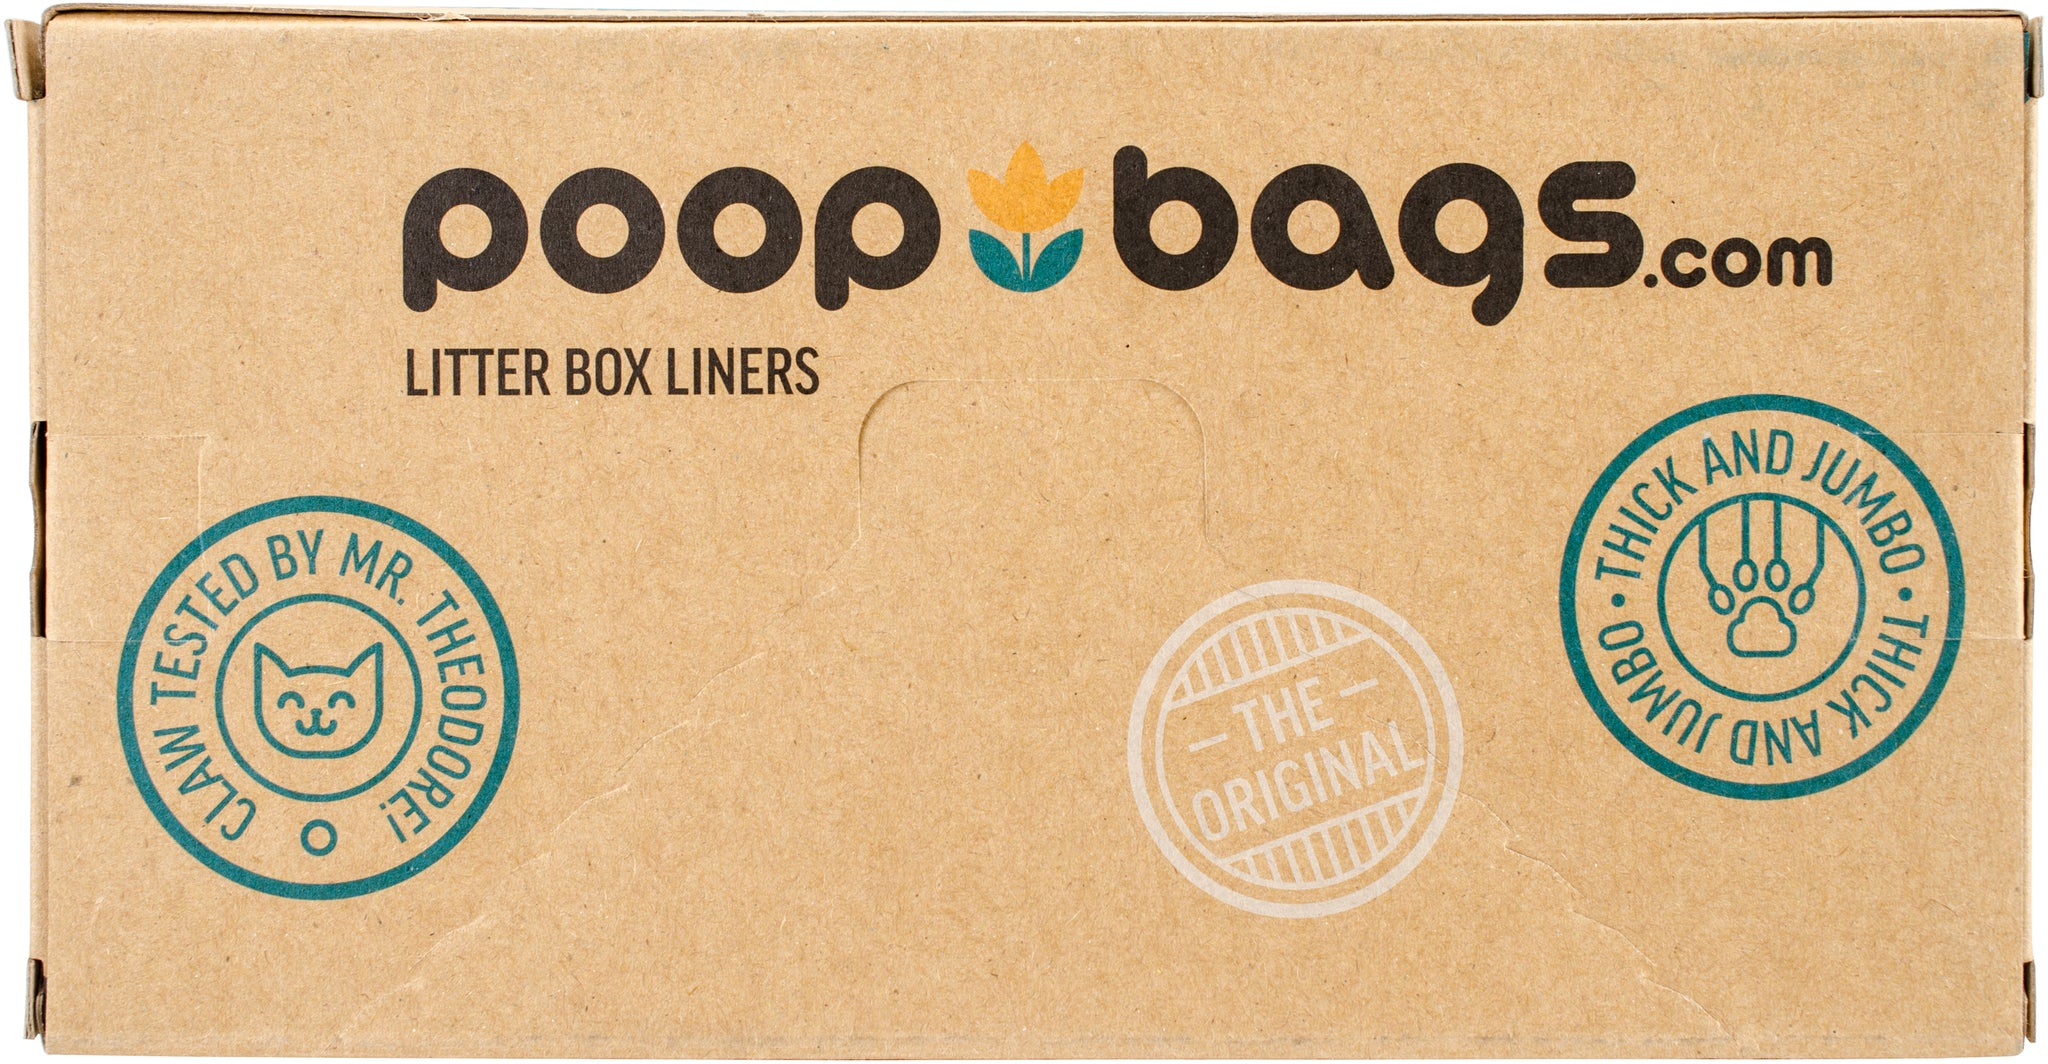 Compostable Litter Box Liners